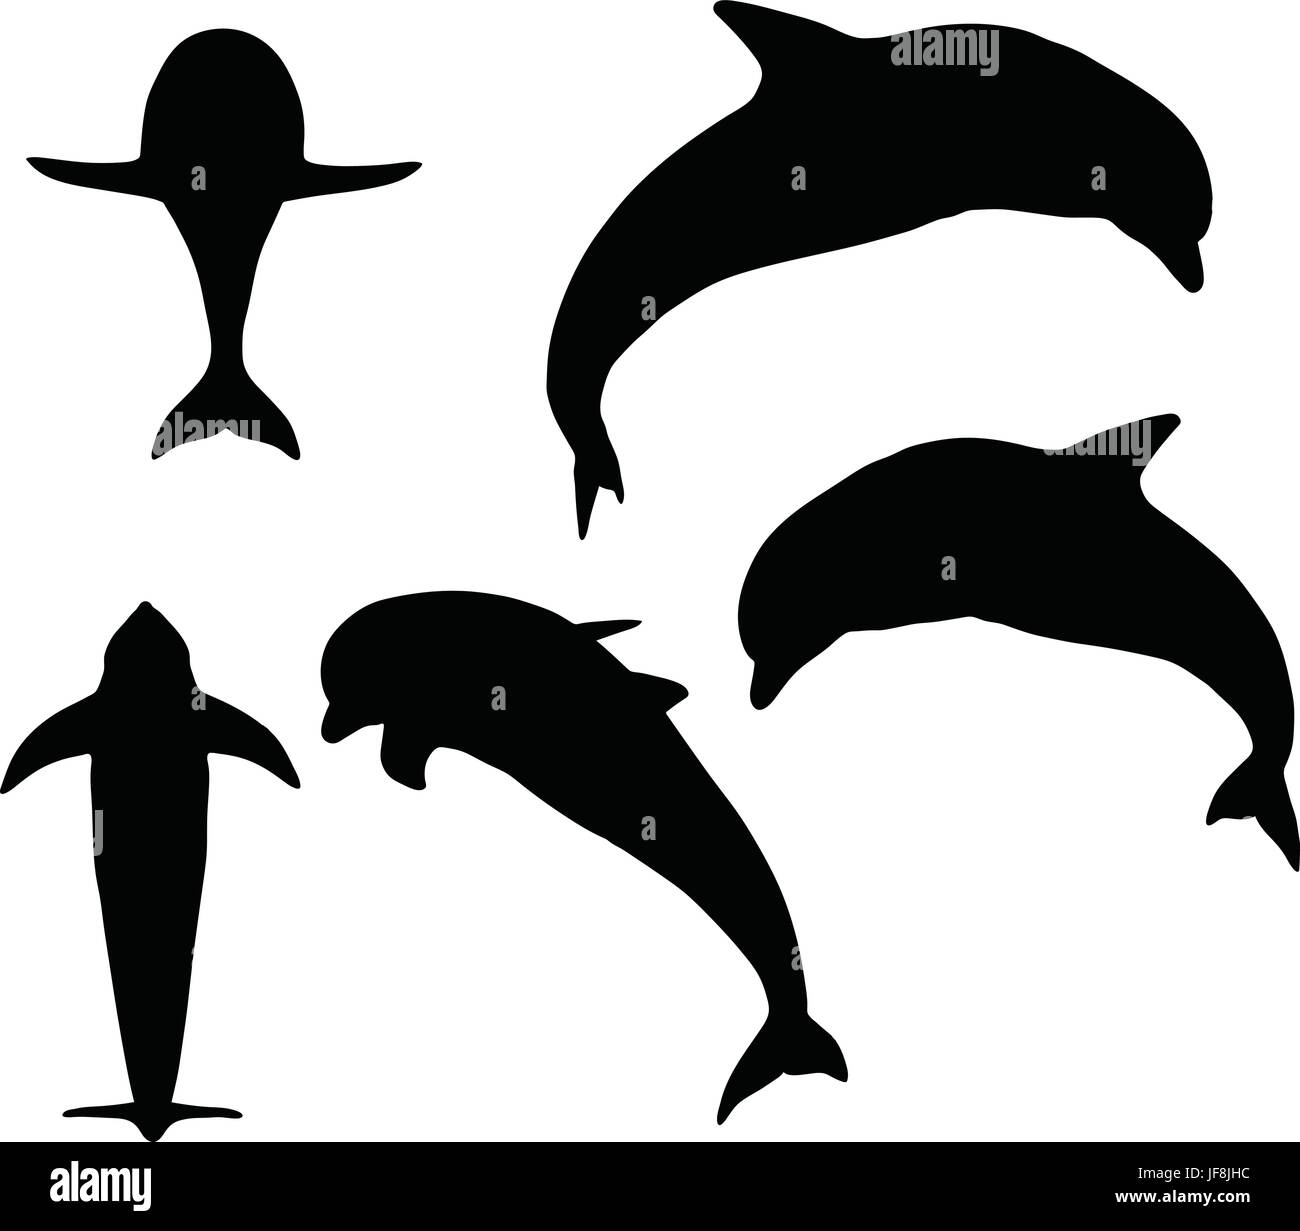 Dolphin Silhouette Isolated Stock Vector Image Art Alamy Silhouette set featuring 4 dolphins in different angles and poses. alamy